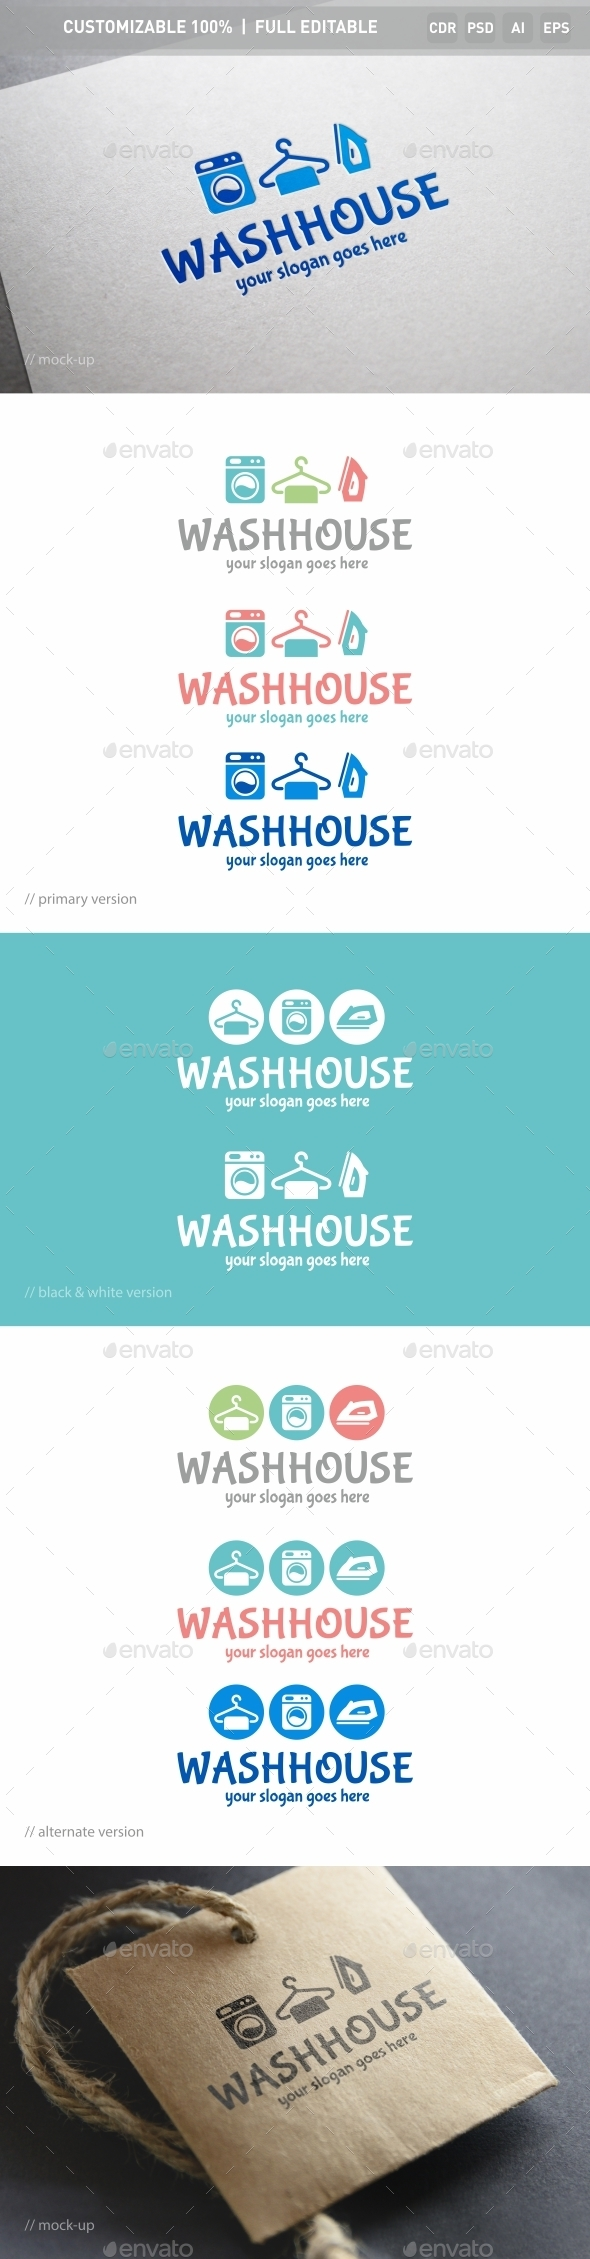 Washhouse Logo Template - Objects Logo Templates